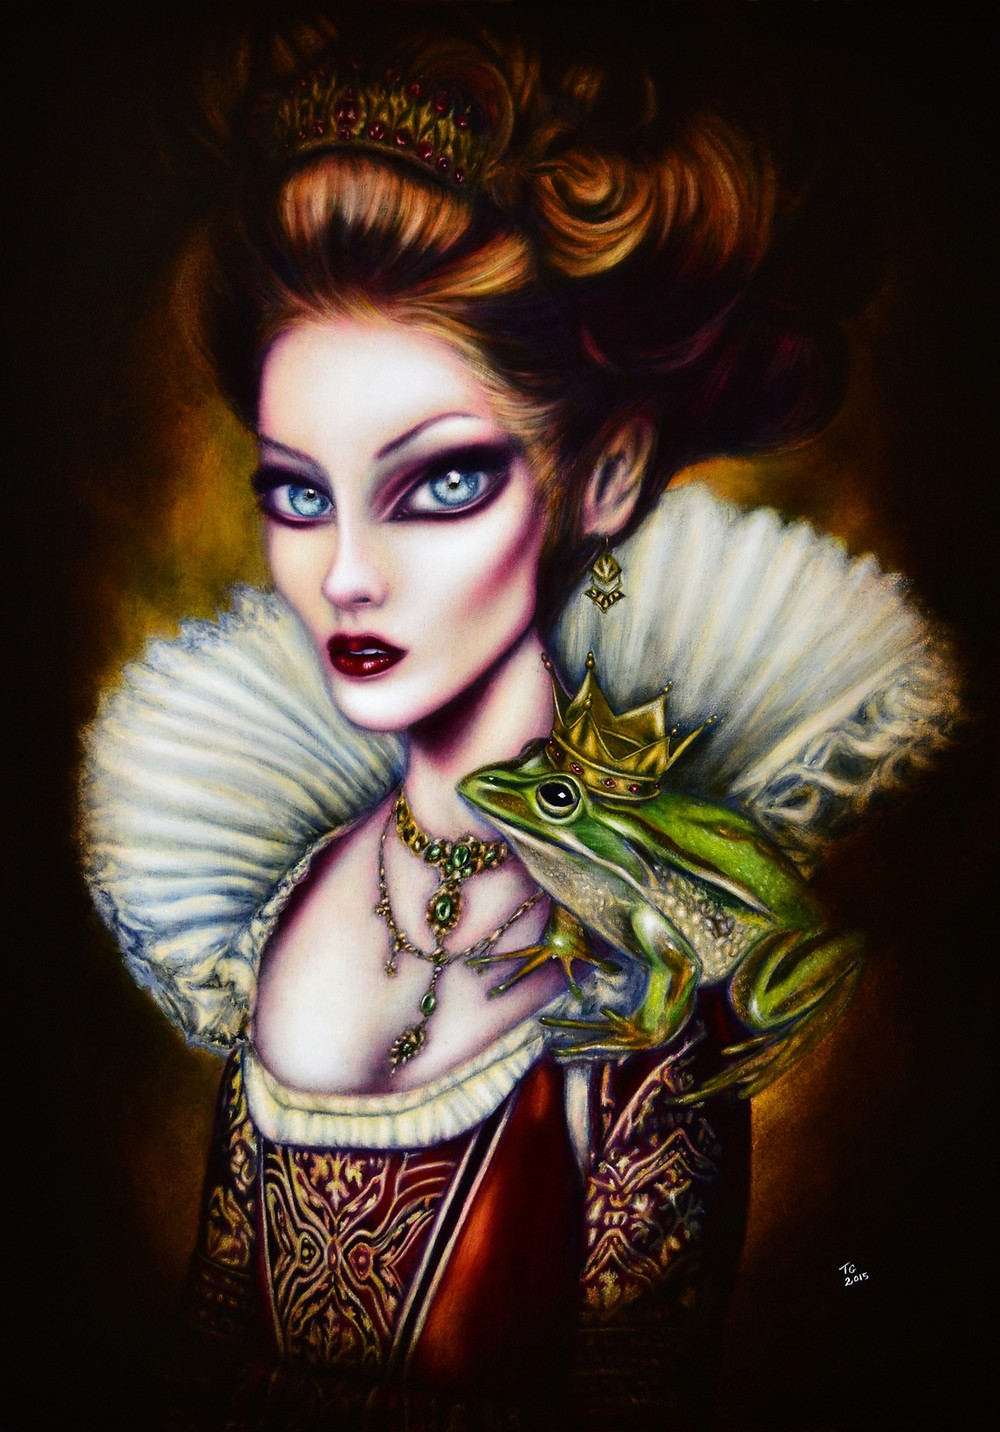 painting of the frog princess with a frog on her shoulder and royal jewlery by tiago azevedo a lowbrow pop surrealism artist